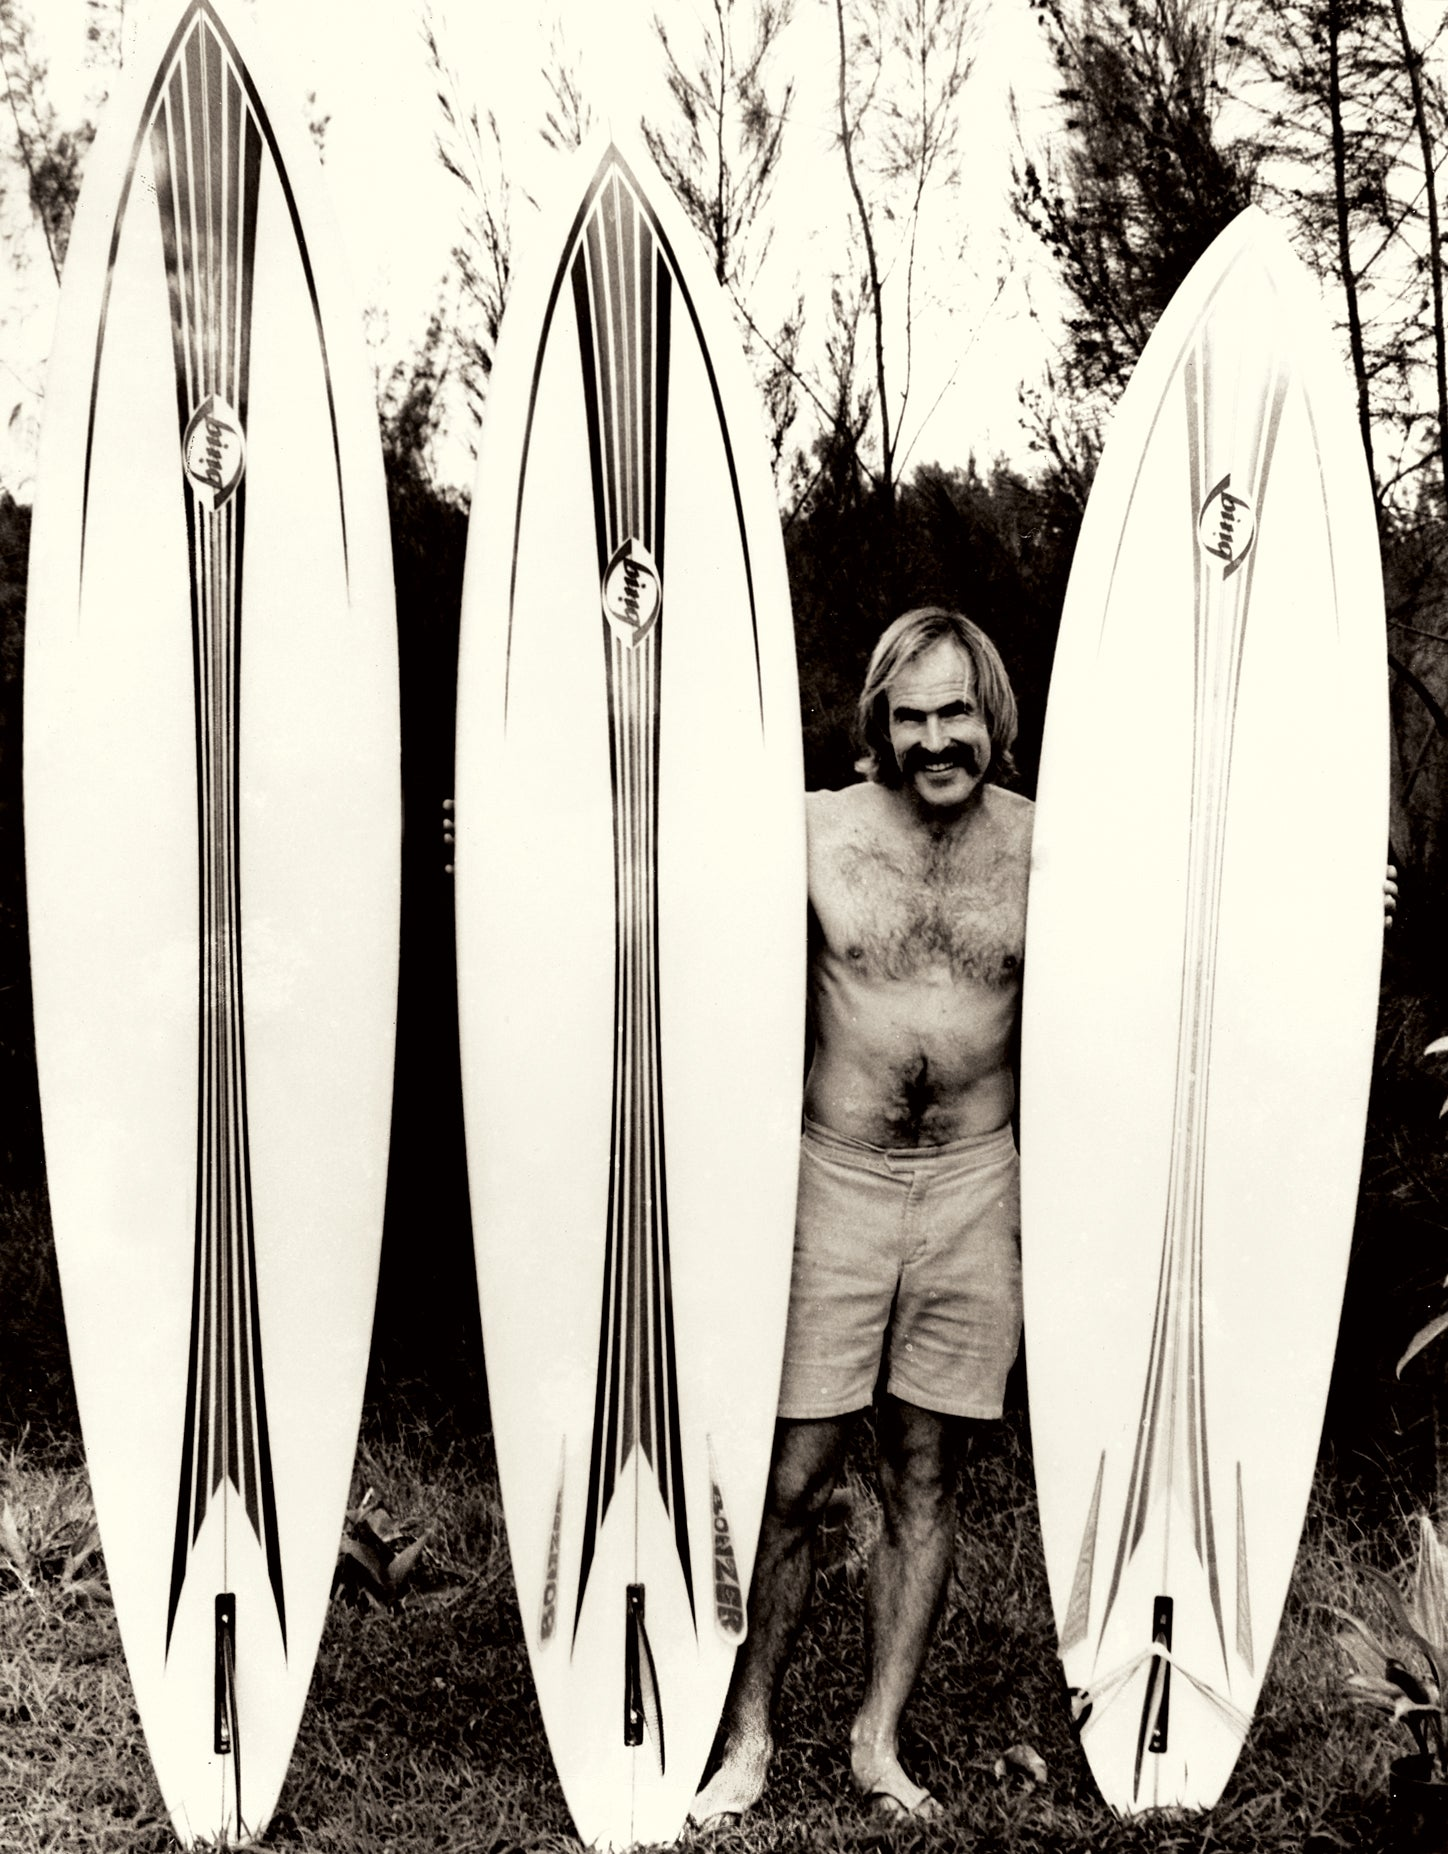 Bing Surfboards Bonzers with Mike Eaton